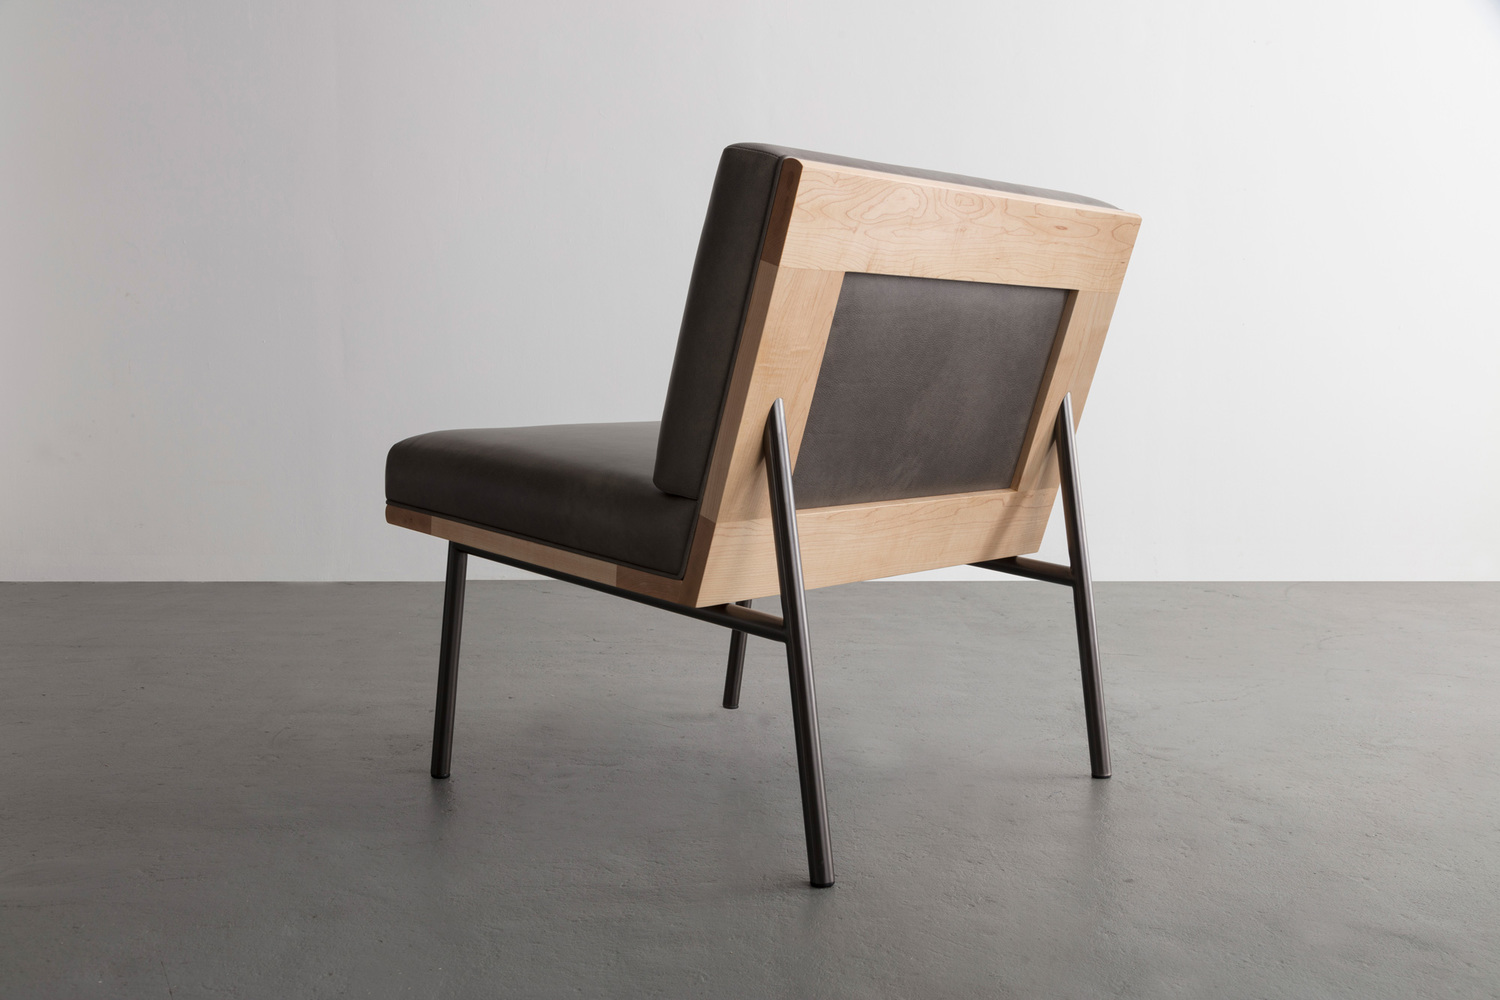 Dgd lounge chair2 edit web